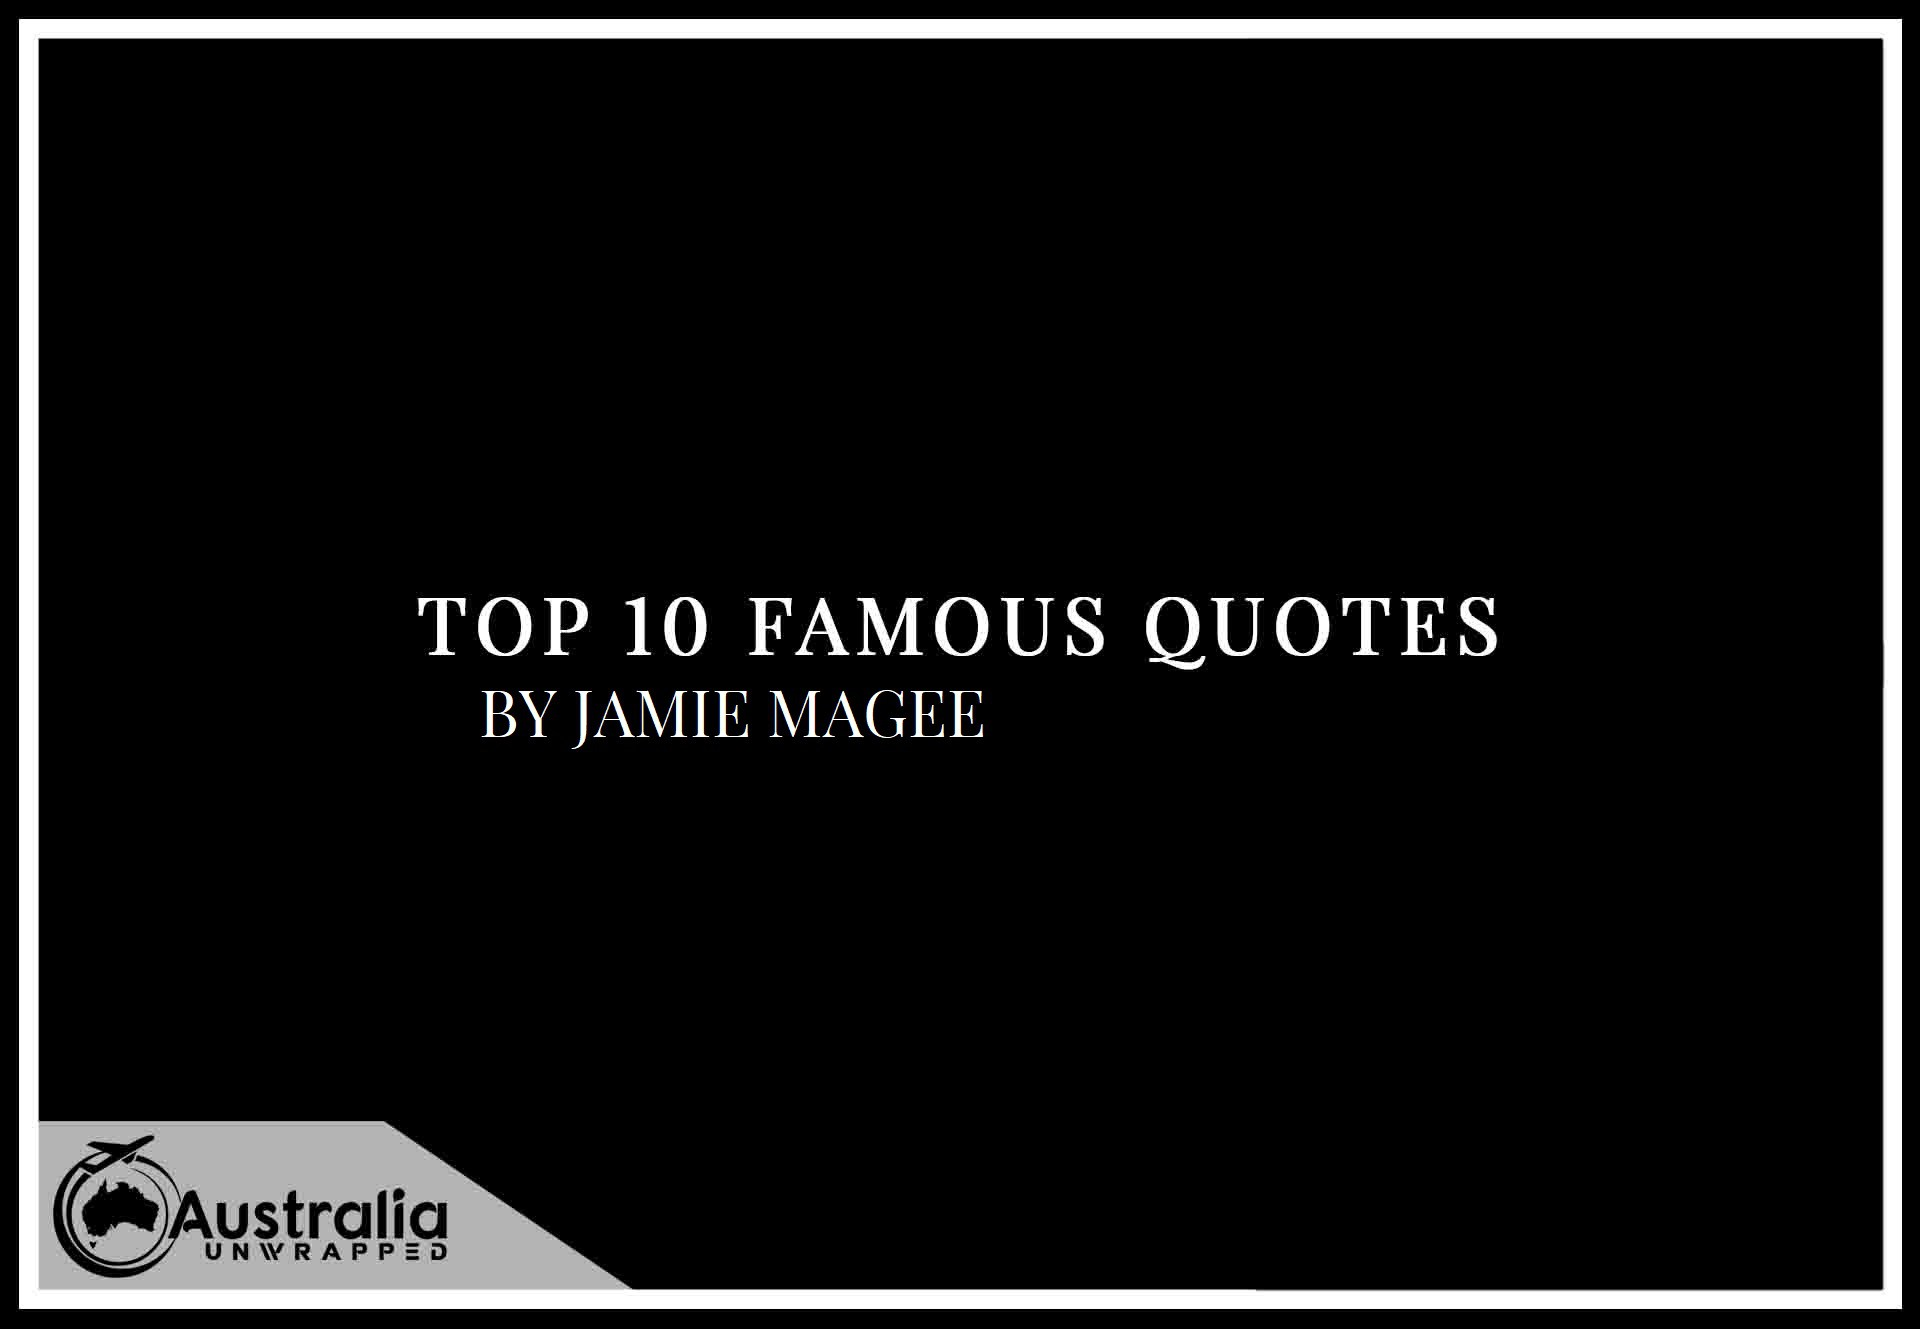 Top 10 Famous Quotes by Author Jamie Magee